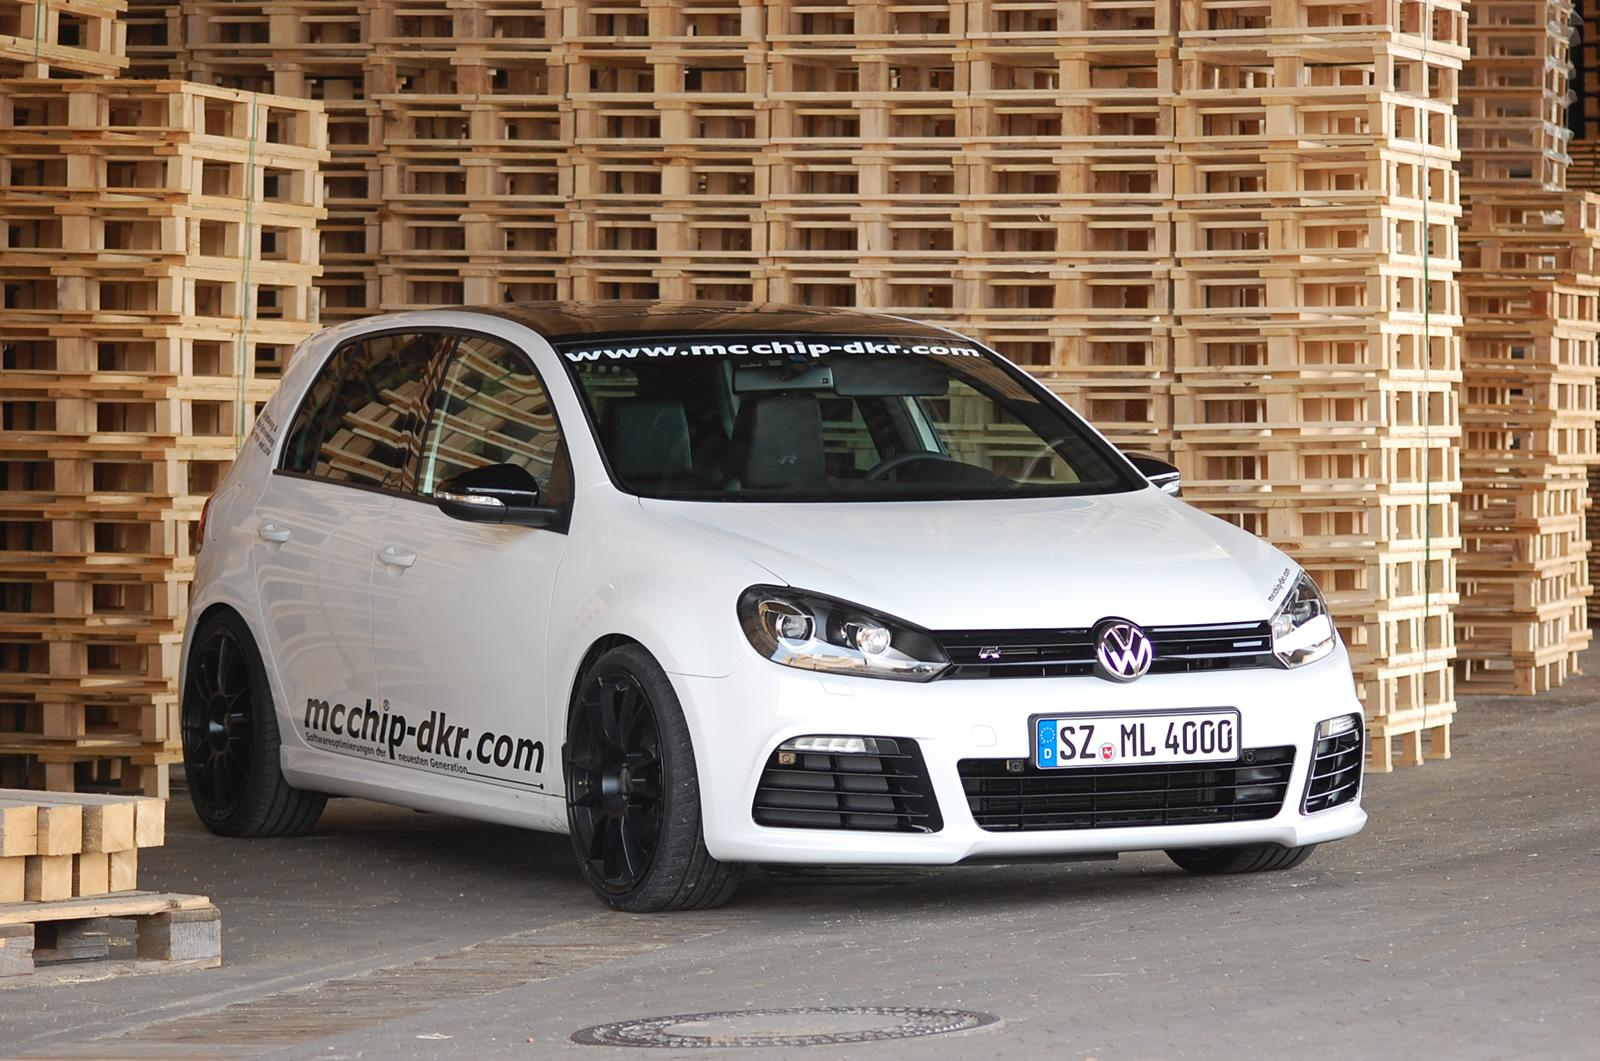 vw golf r by mcchip dkr. Black Bedroom Furniture Sets. Home Design Ideas